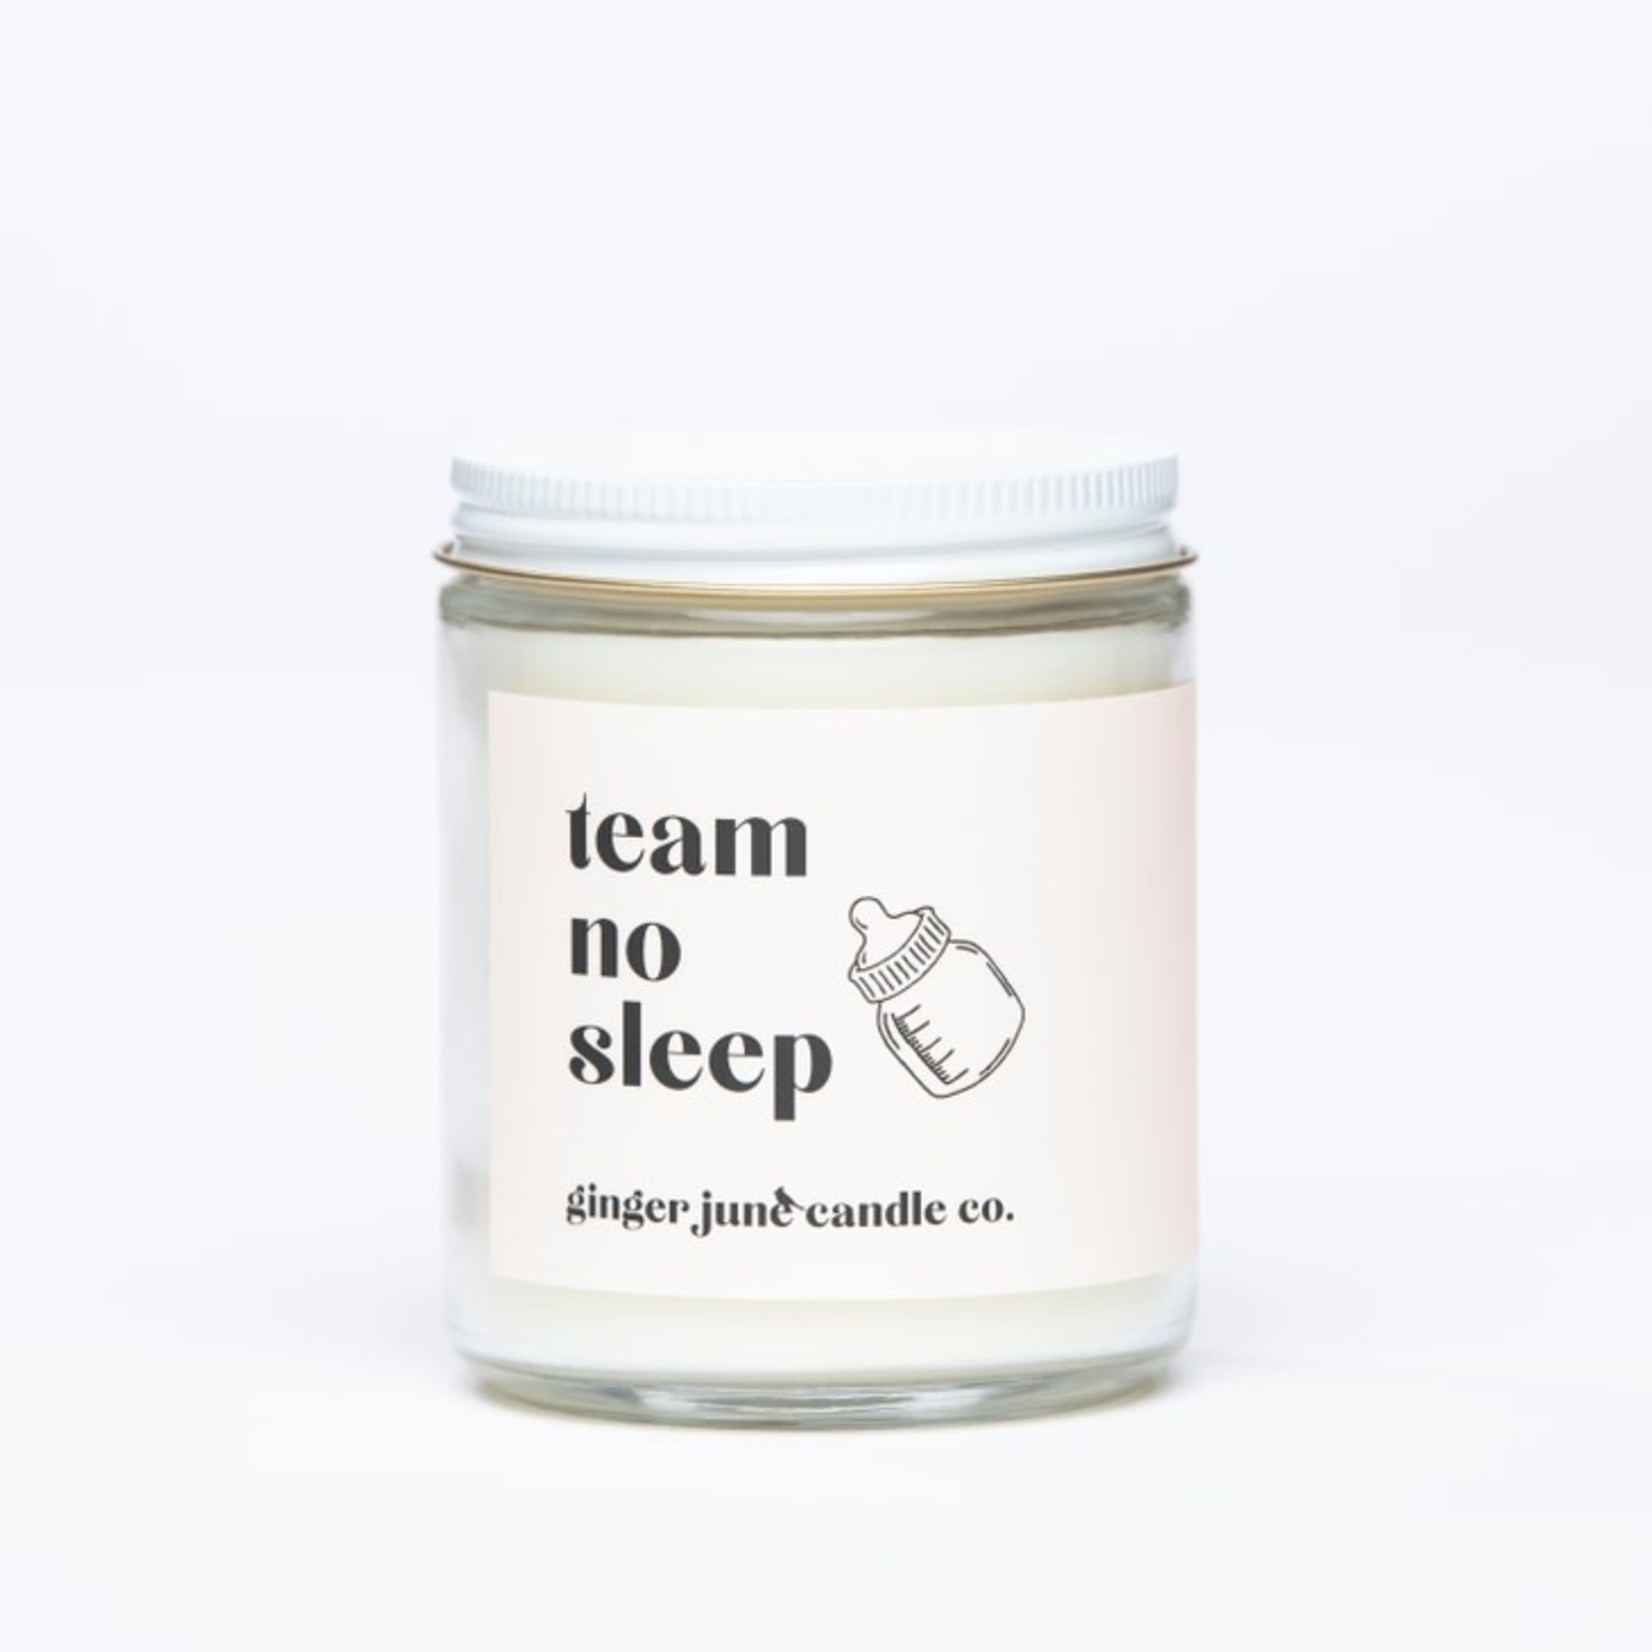 Ginger June Candle Co. TEAM NO SLEEP • NON TOXIC SOY CANDLE